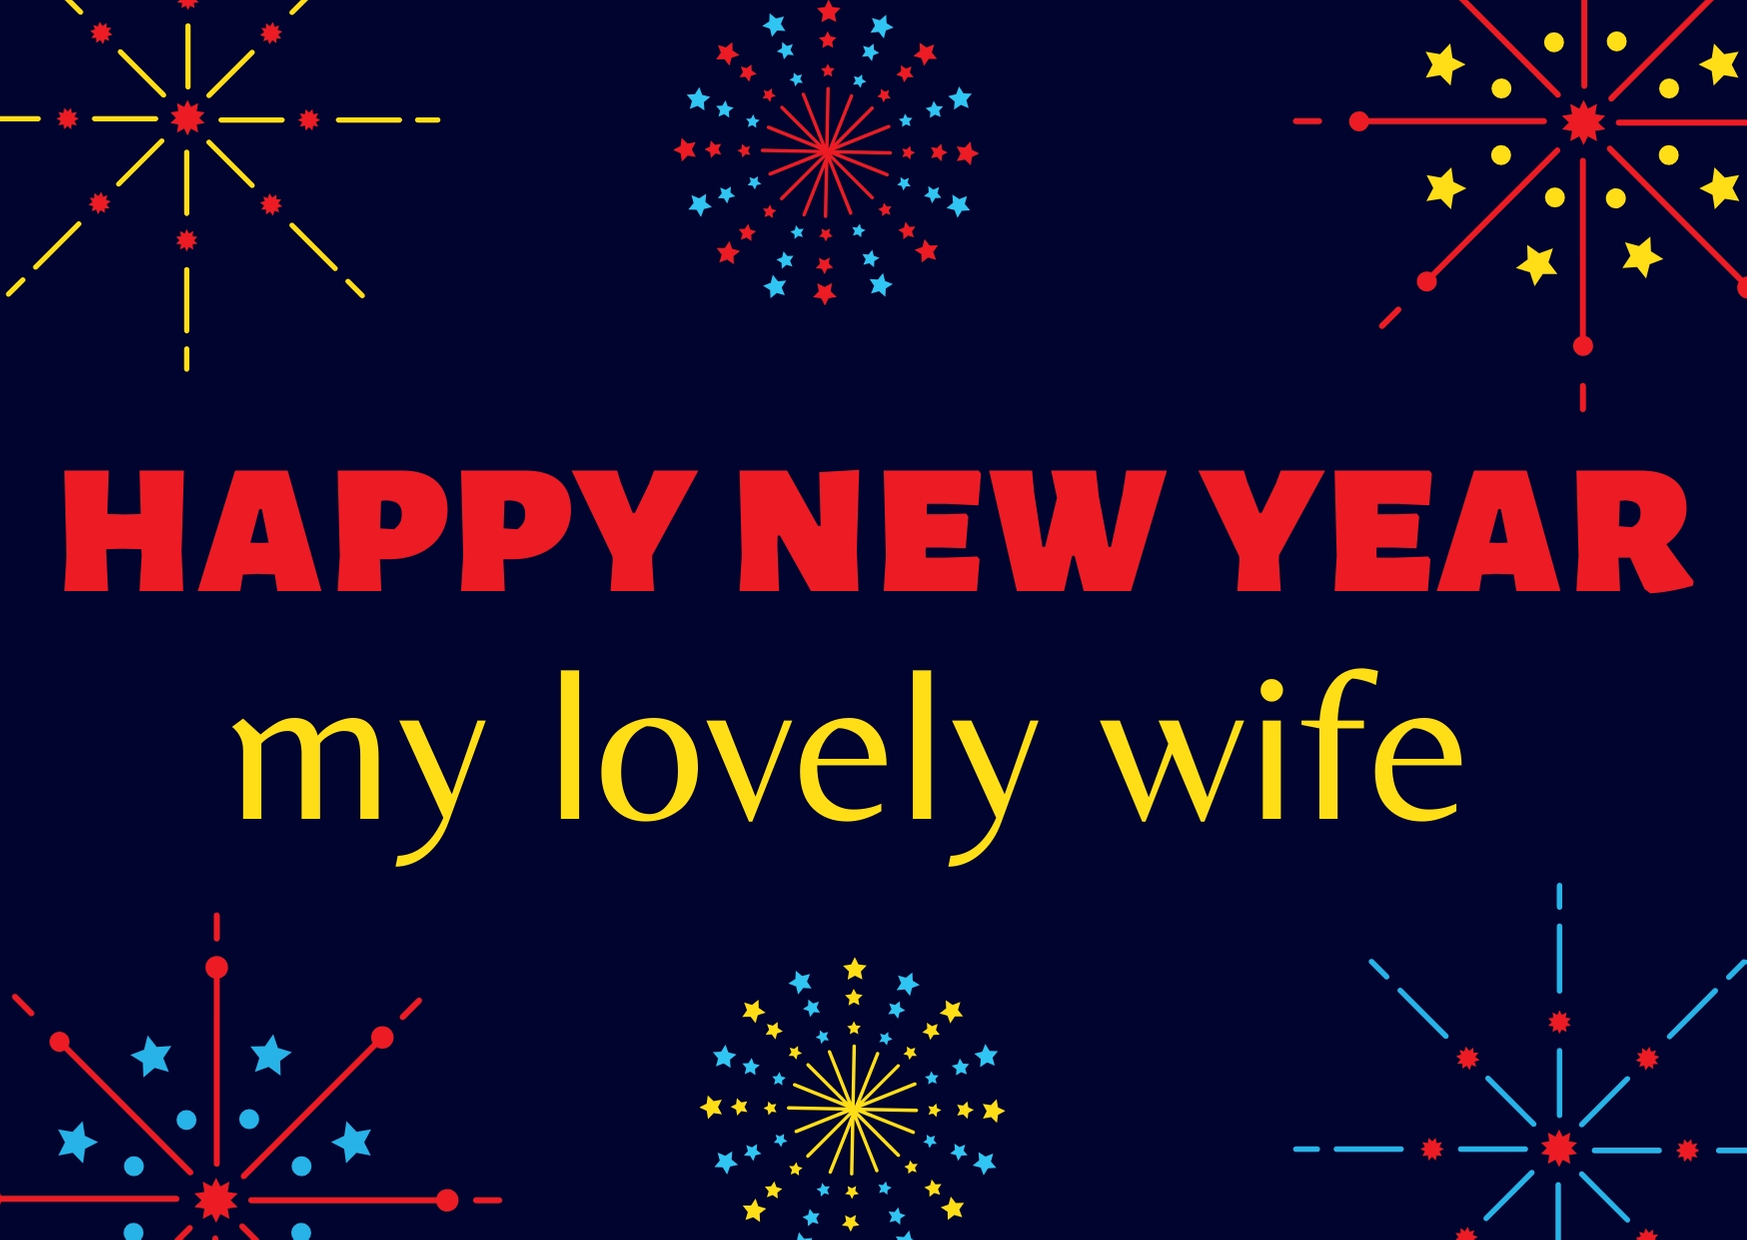 Happy New Year 2020 Wishes for My Lovely Wife